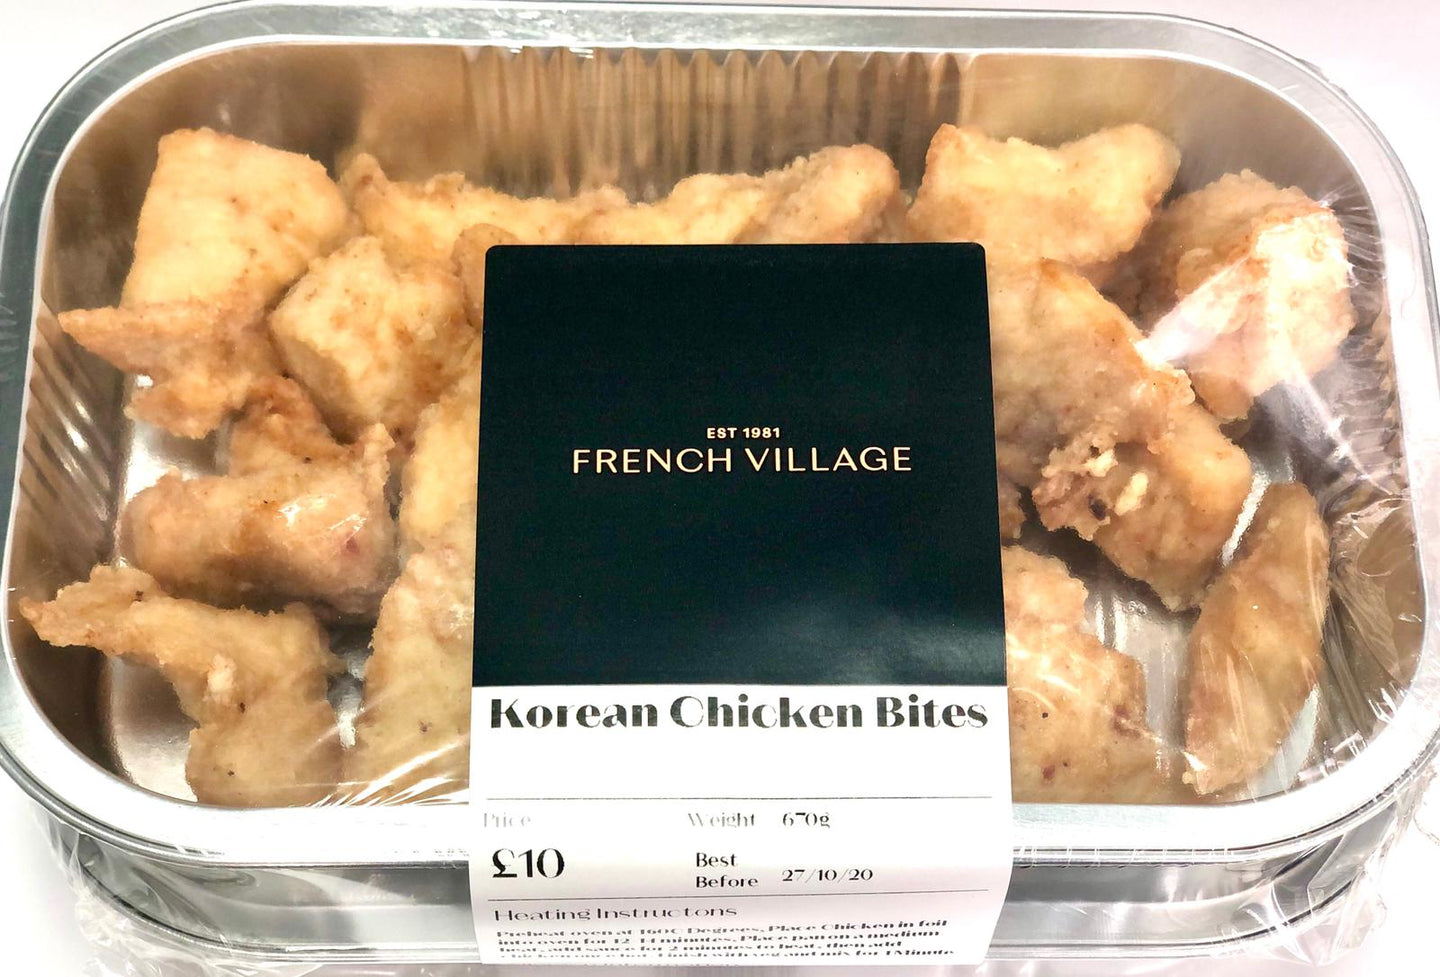 Korean Chicken Bites